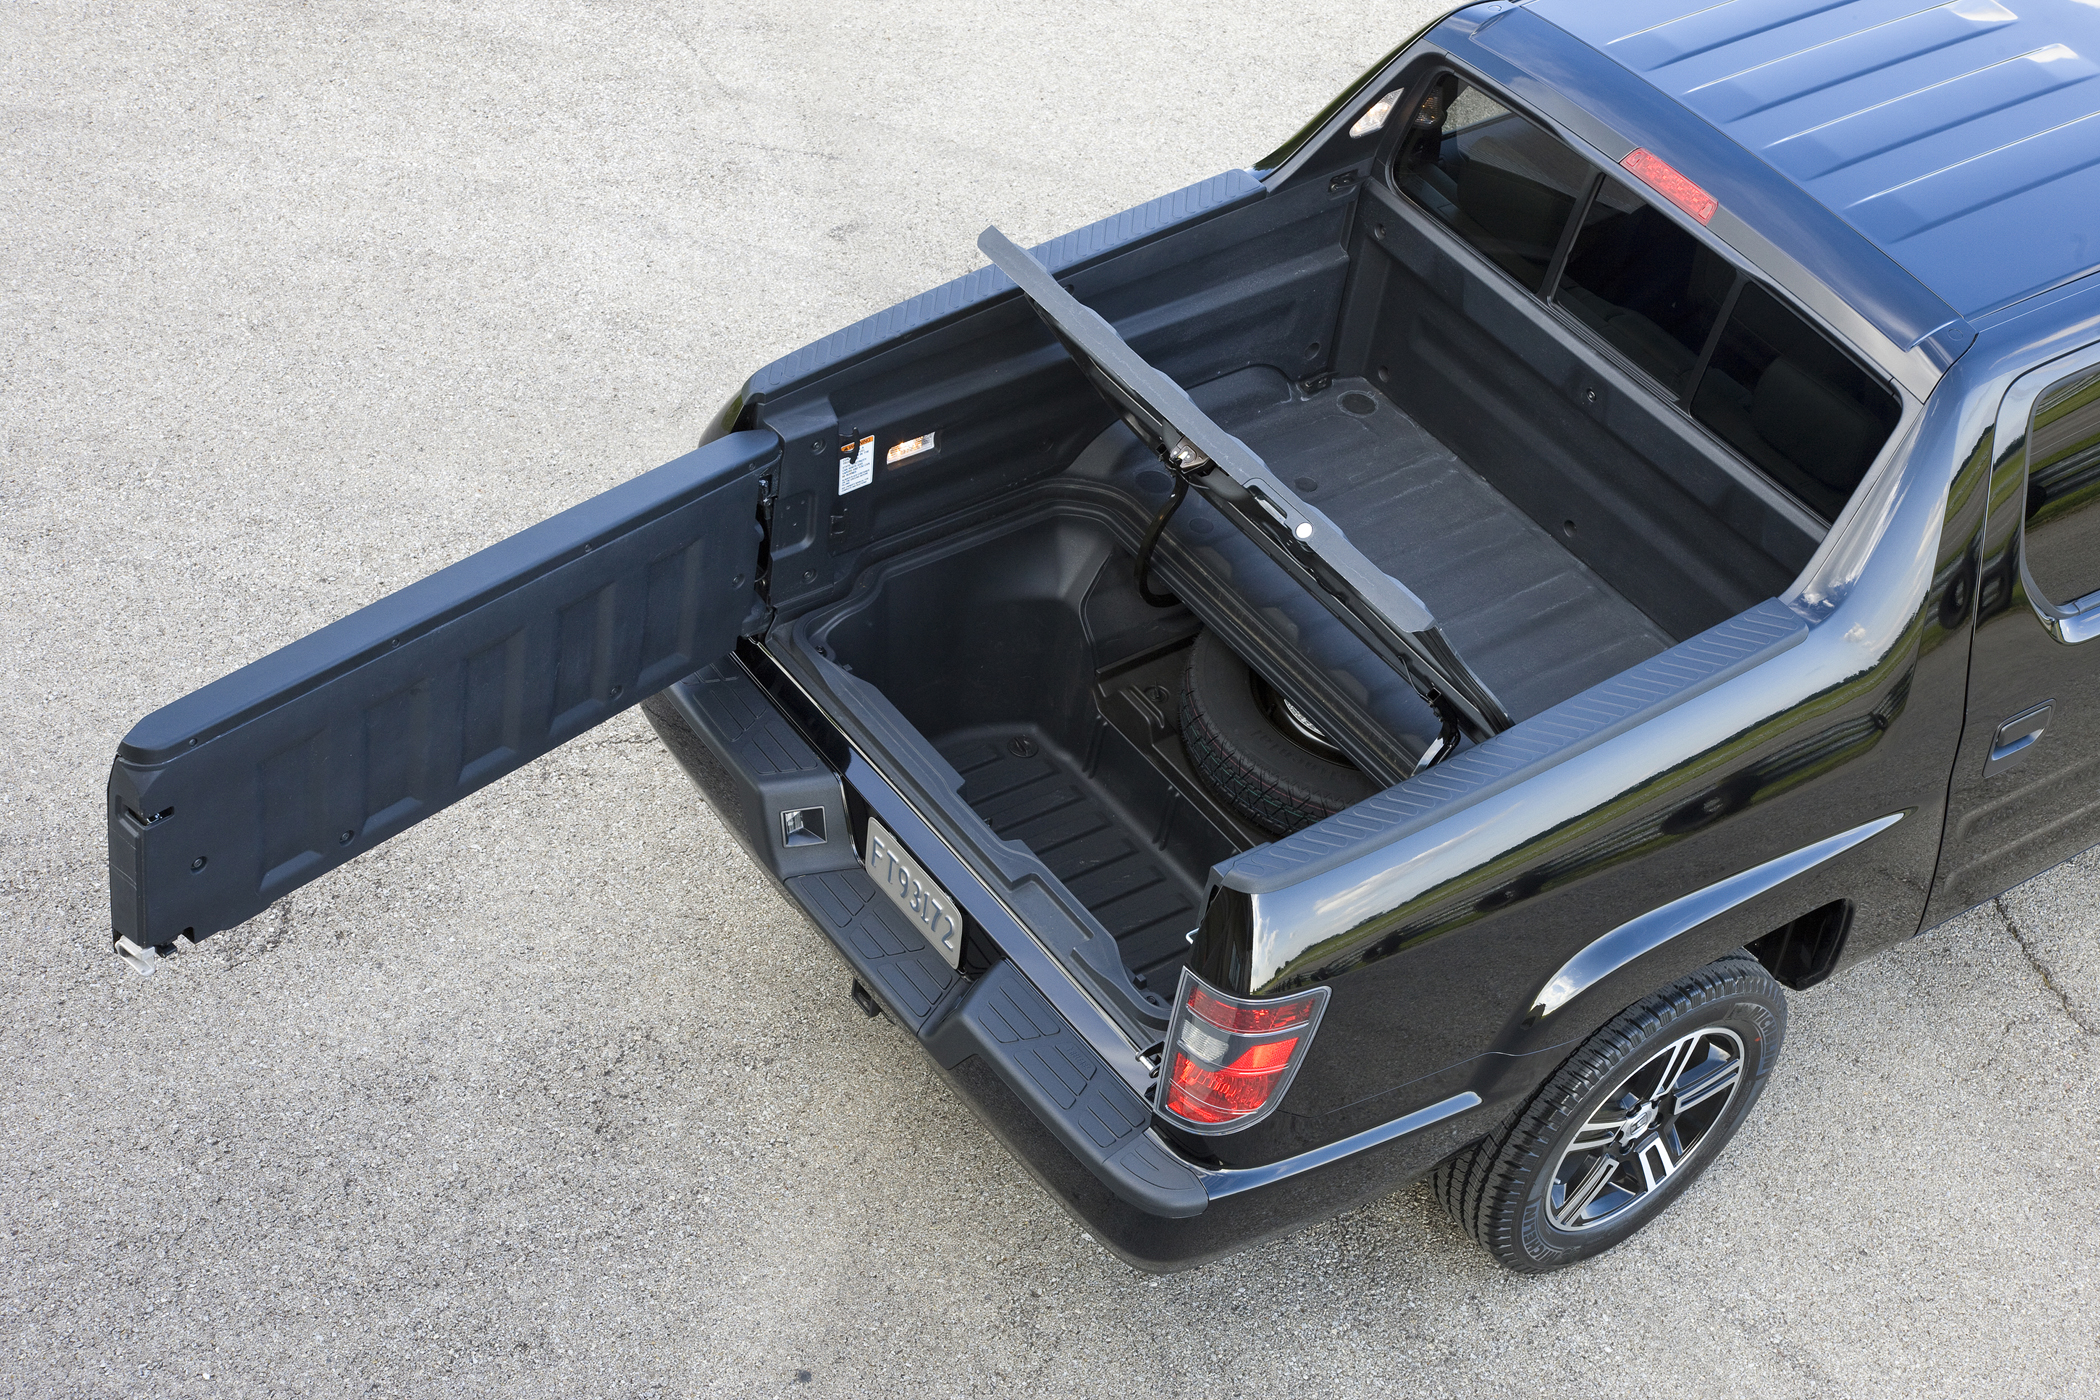 Floor mats honda ridgeline - The Dashboard And Center Console Are Practical Utilitarian Designs The Speedometer Is Large Center Mounted And Easy To Read Climate Control And Radio